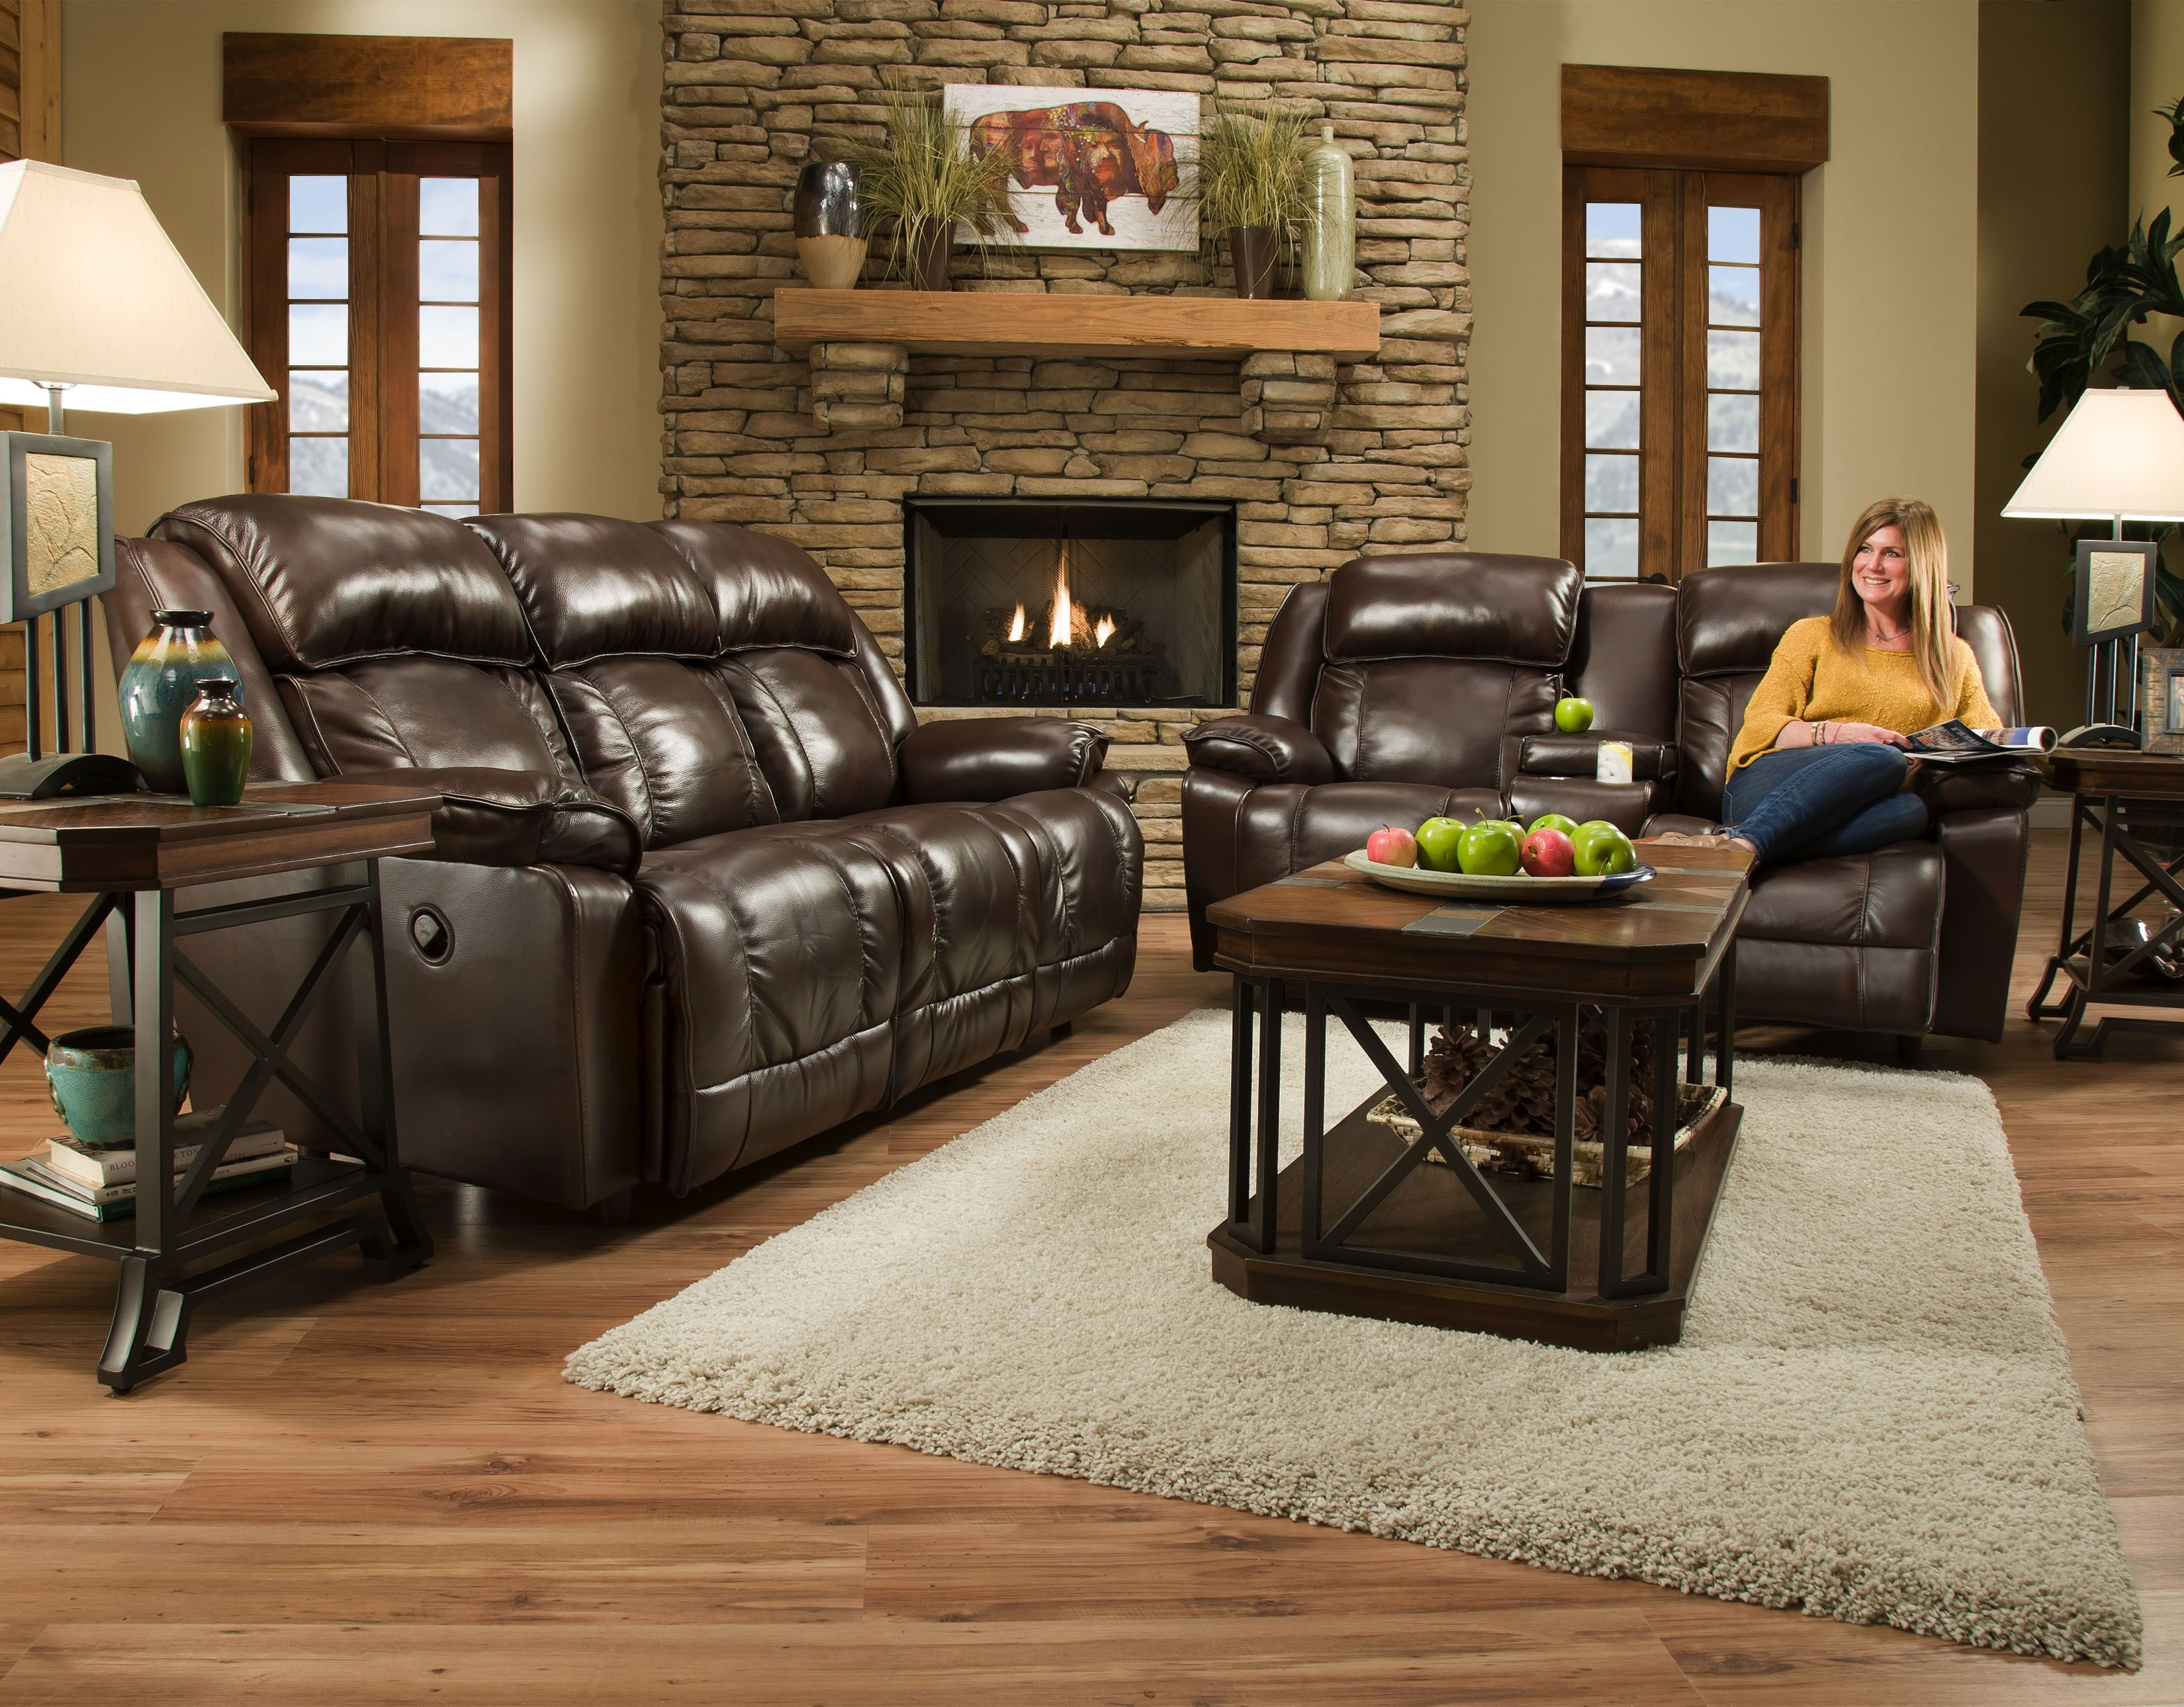 Enjoyable Quincy Leather Reclining Sofa From Franklin Reclining Inzonedesignstudio Interior Chair Design Inzonedesignstudiocom